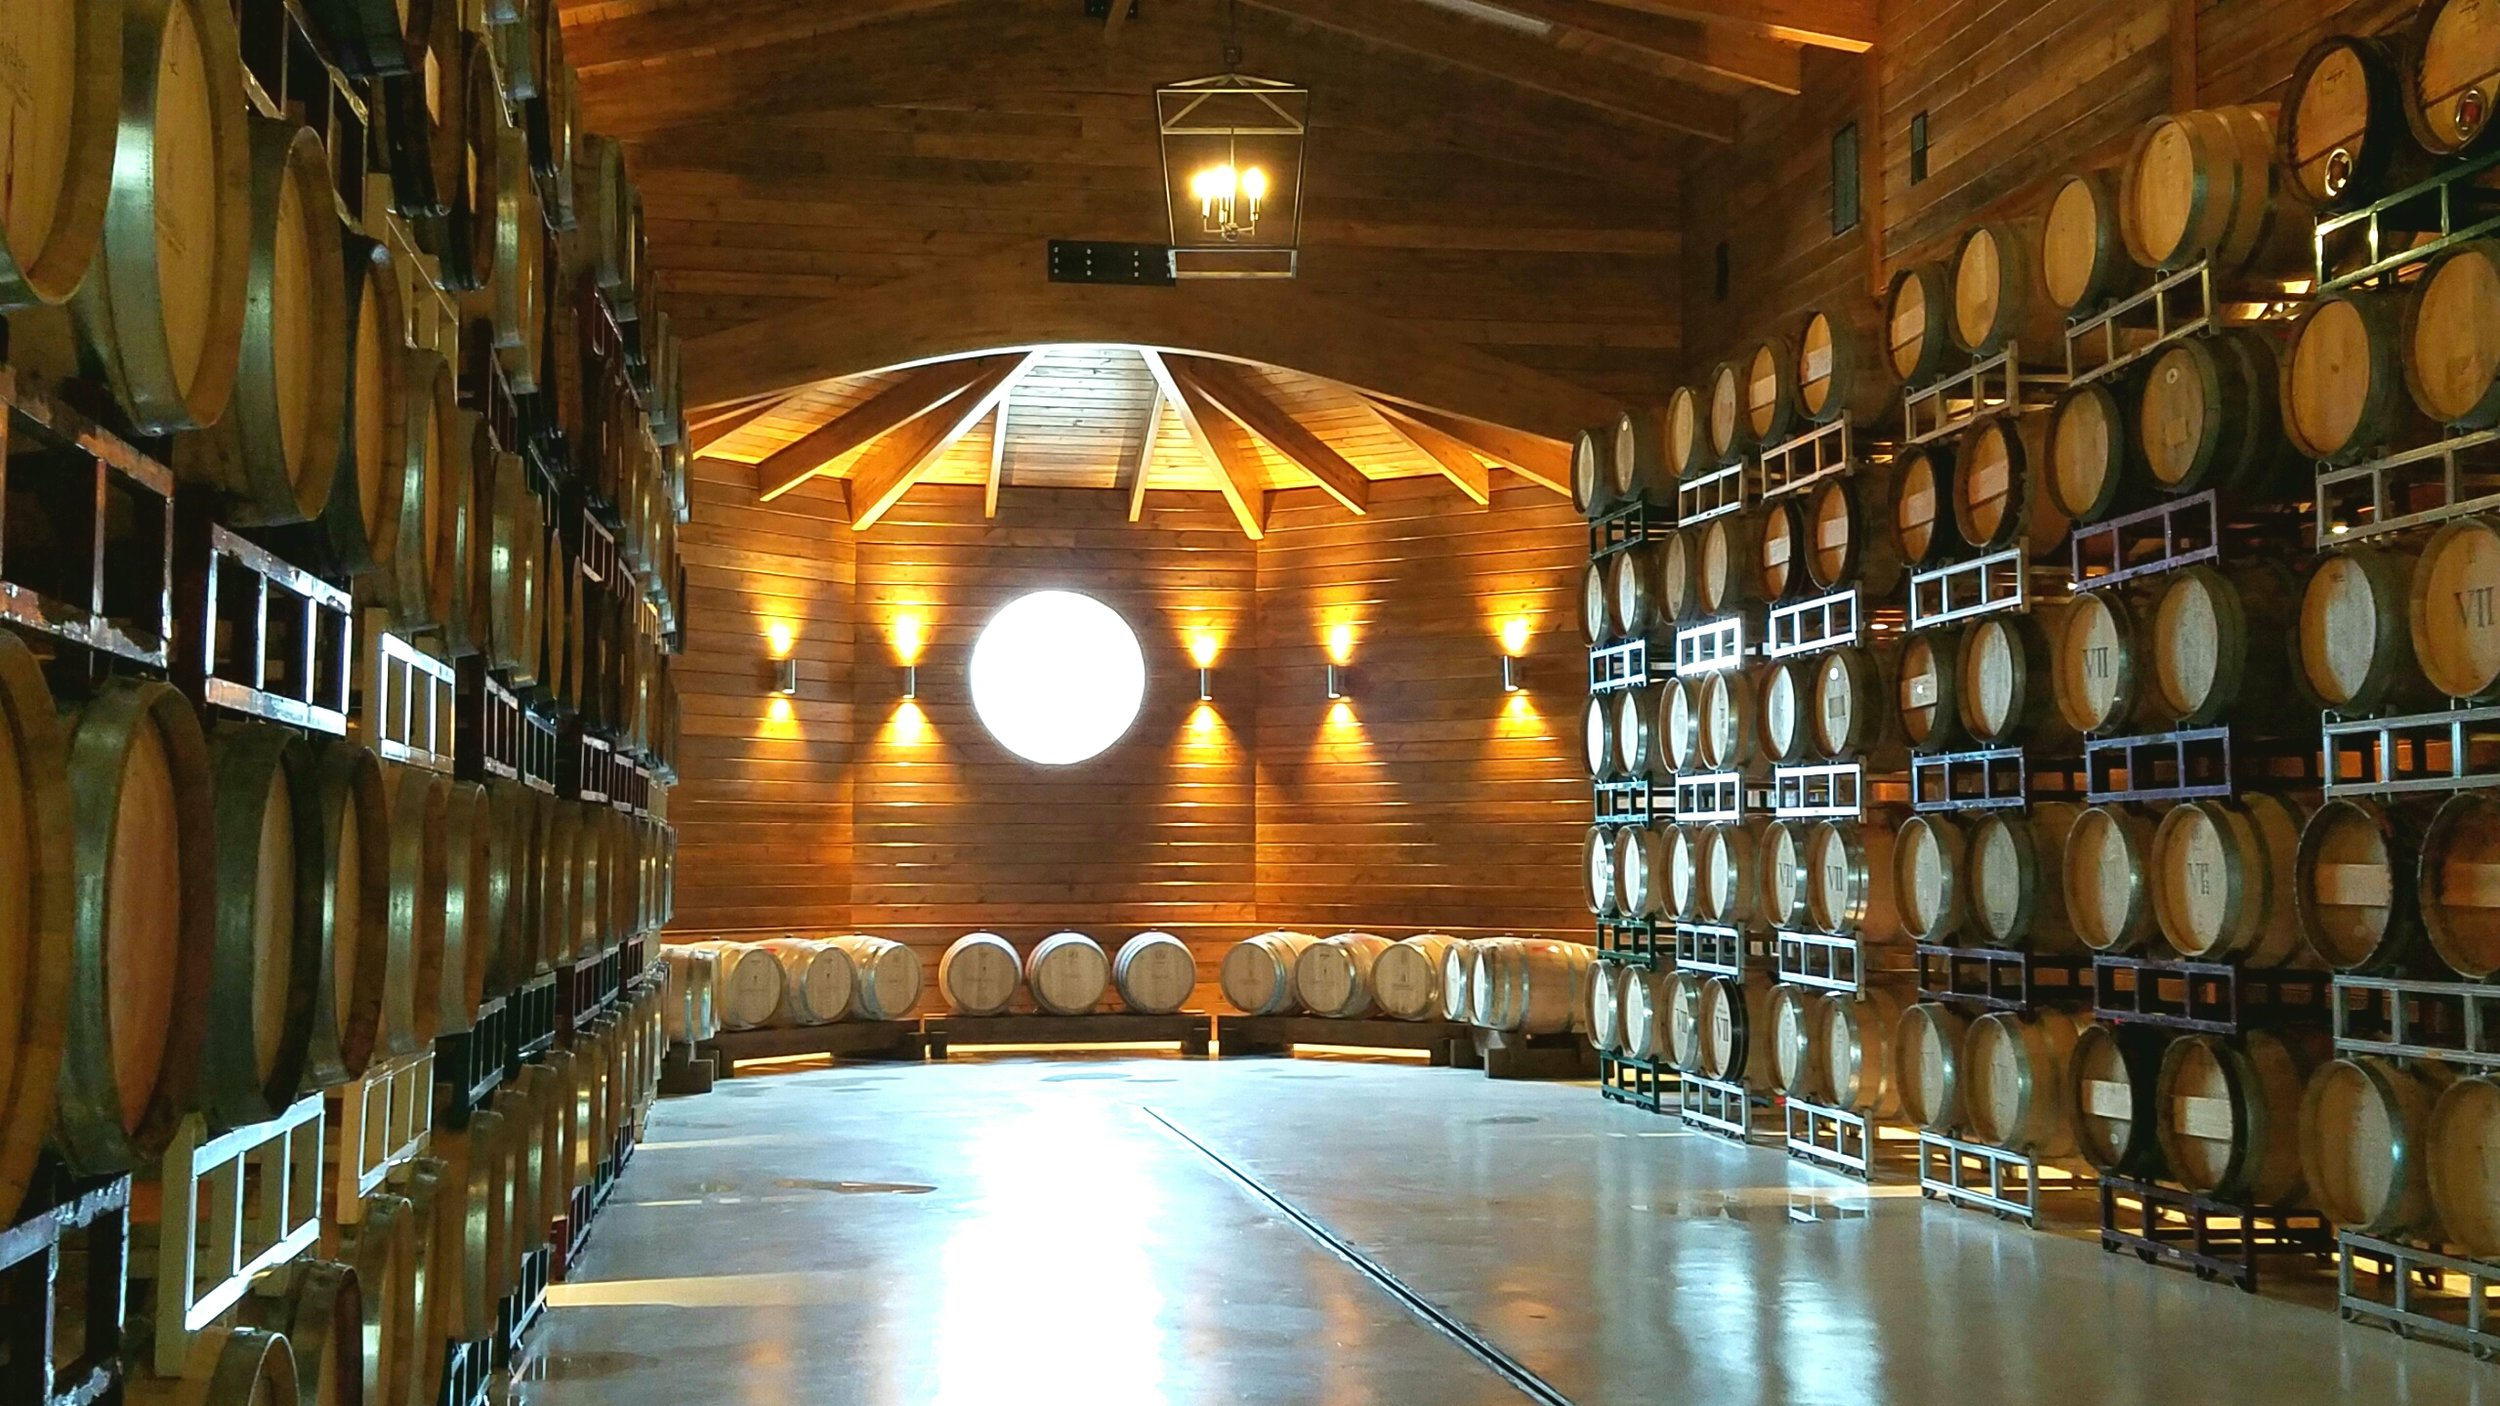 The stunning Barrel Room is lined floor to ceiling with oak paneling and has a pitched ceiling with flying wood buttresses. Greenhill has been using it for special dinner events and receptions, including a special Valentine's Day seated dinner.